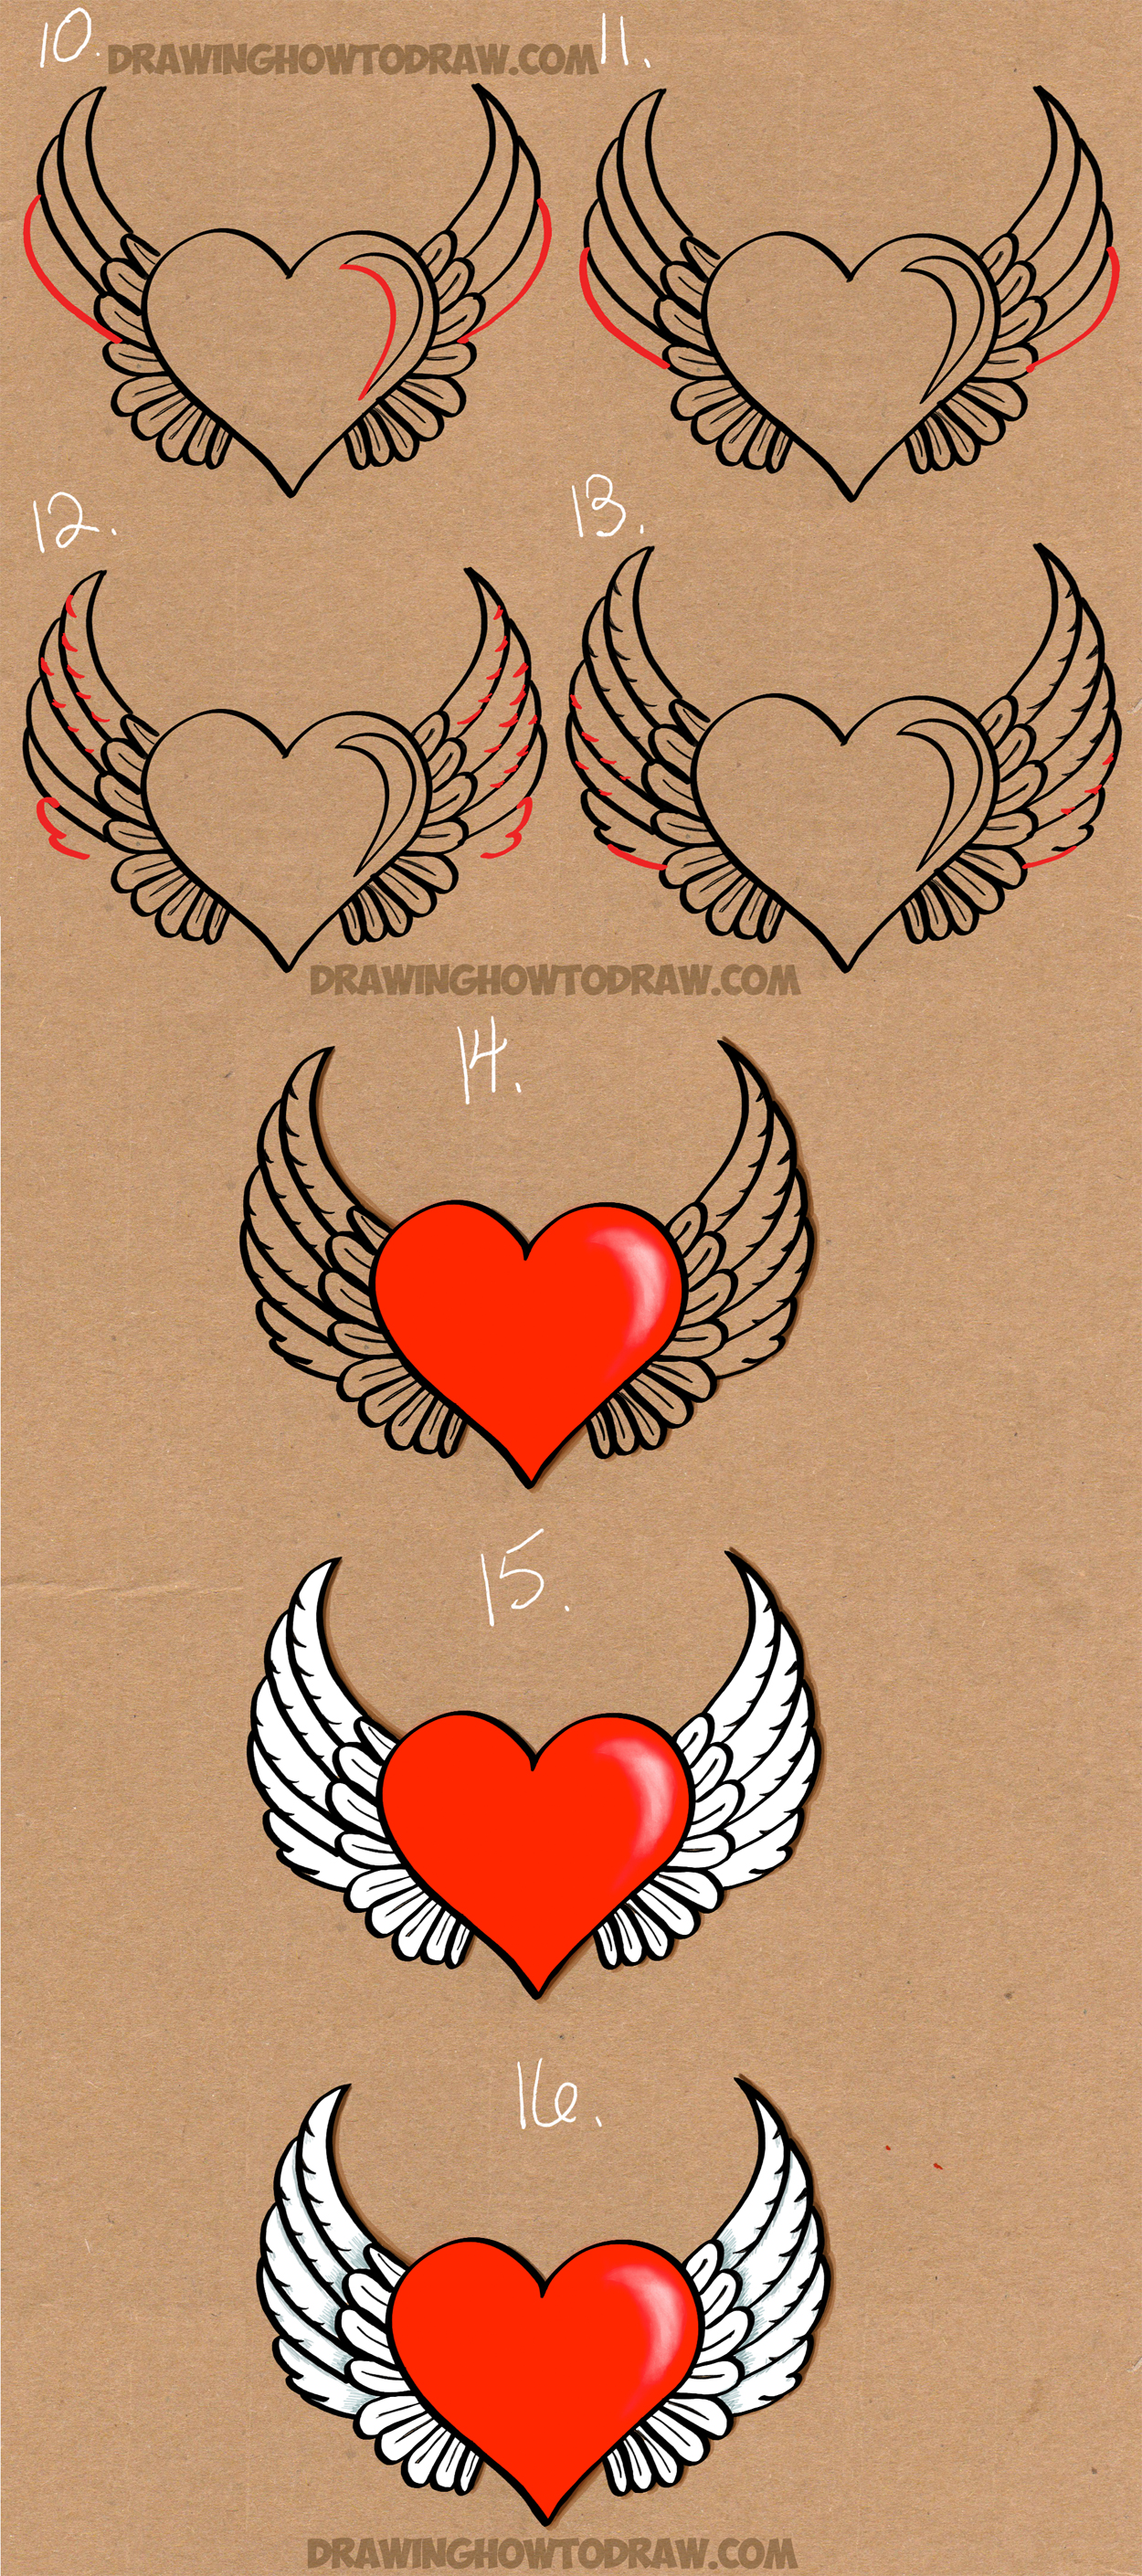 How To Draw A Winged Heart Heart With Wings